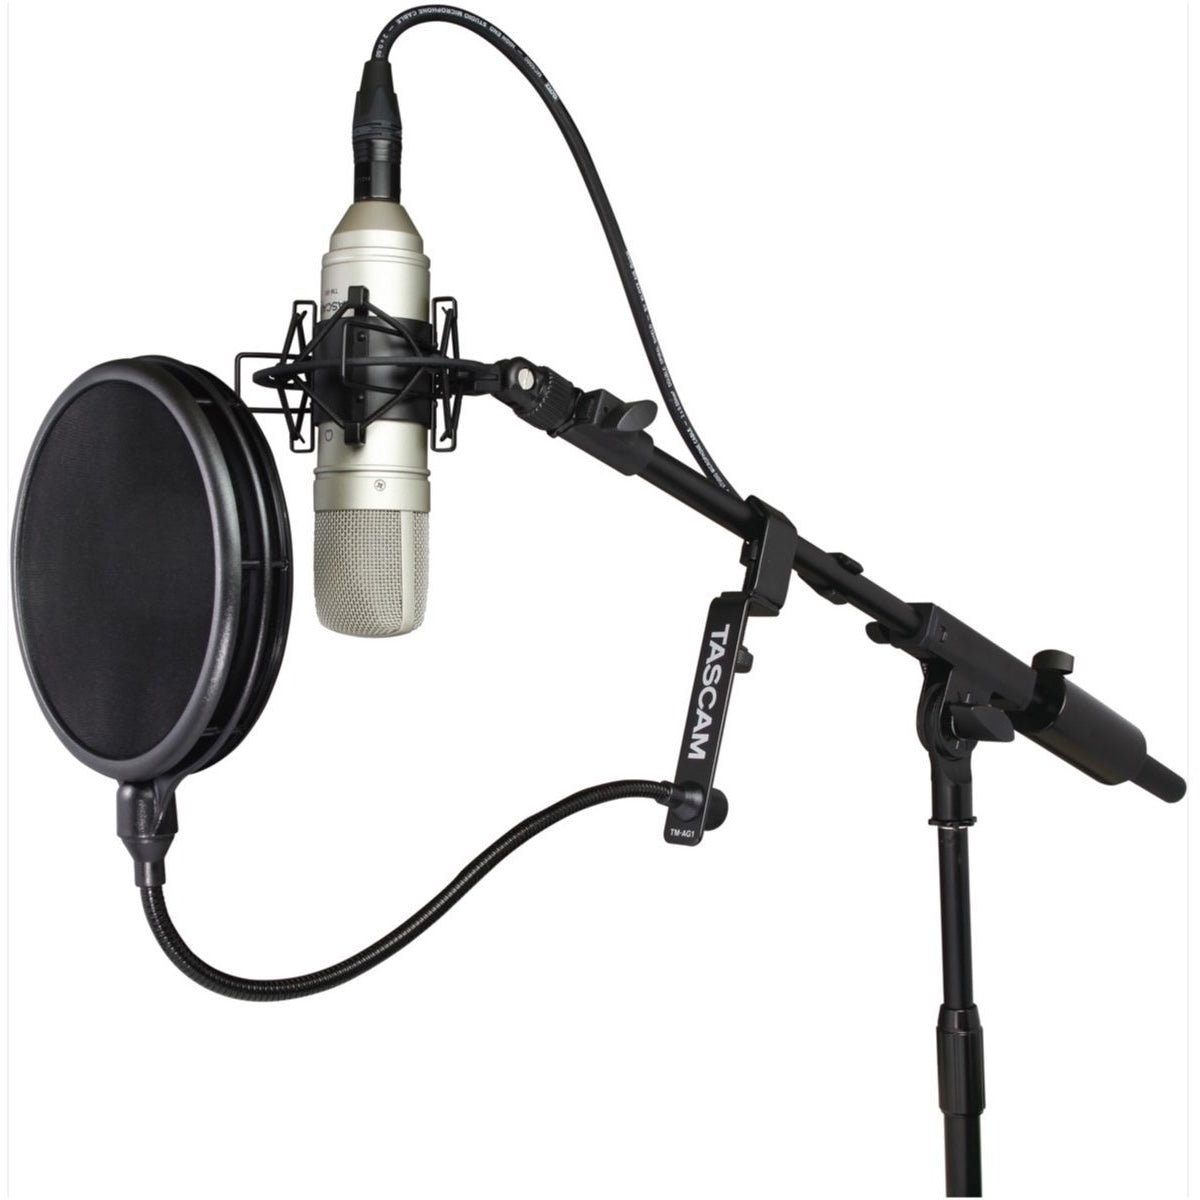 Tascam TM-AG1 Dual-Screen Microphone Pop Filter